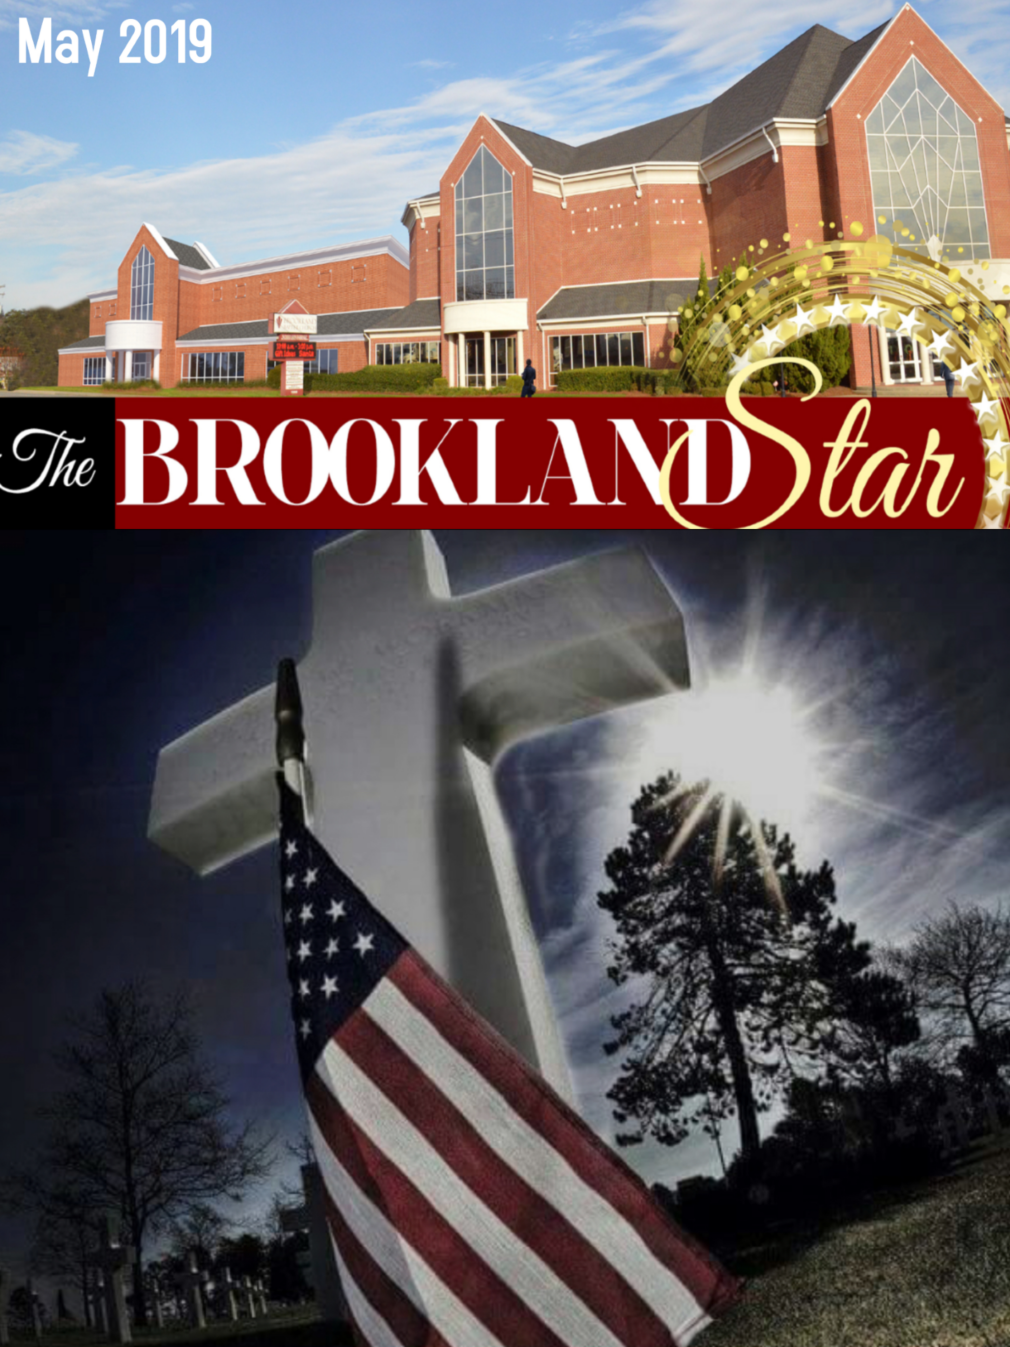 The Brookland Star May 2019 Edition